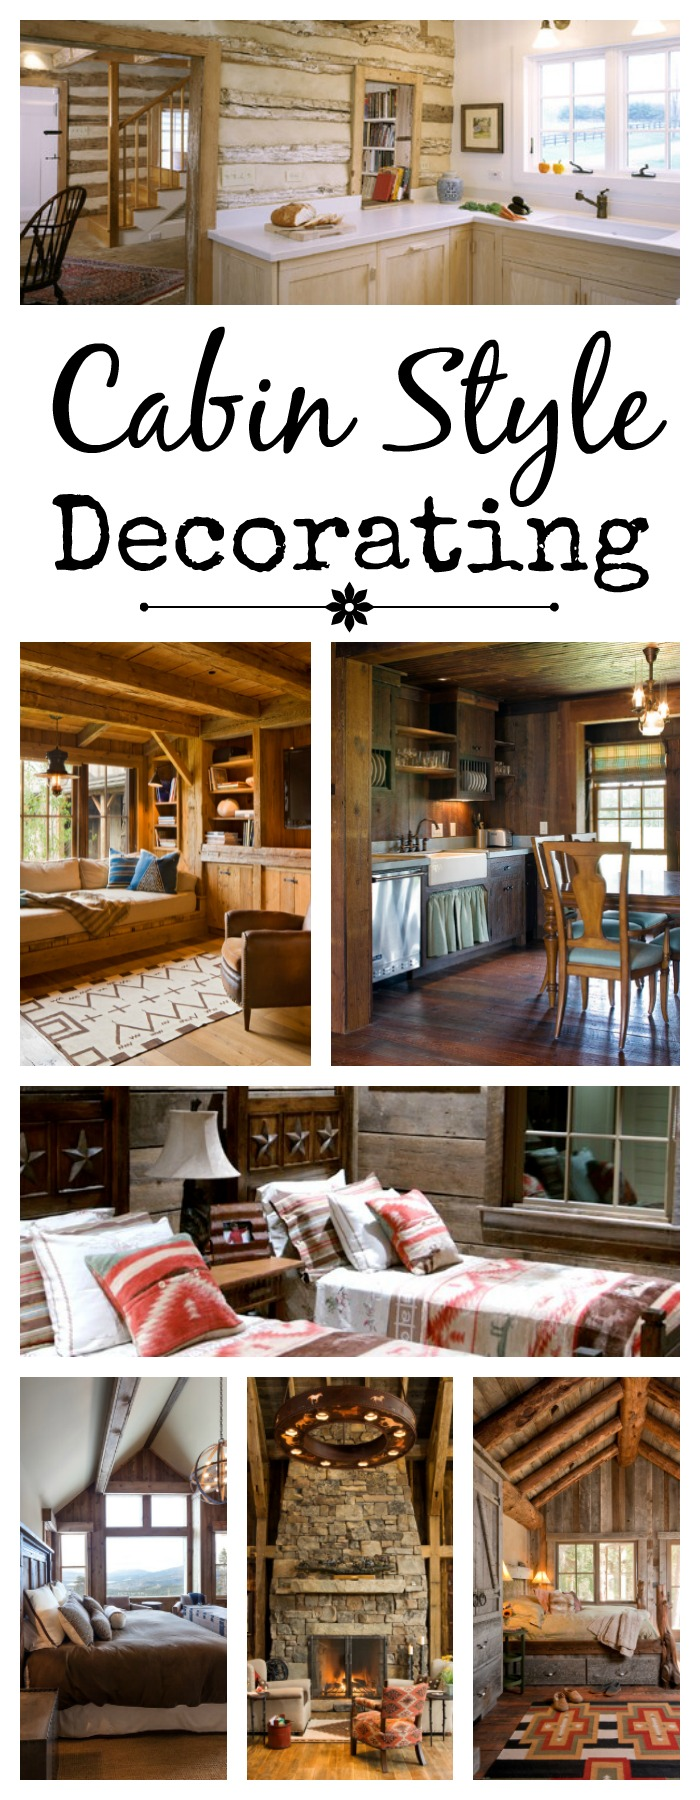 Get Cozy with Cabin Style Decorating - Town & Country Living